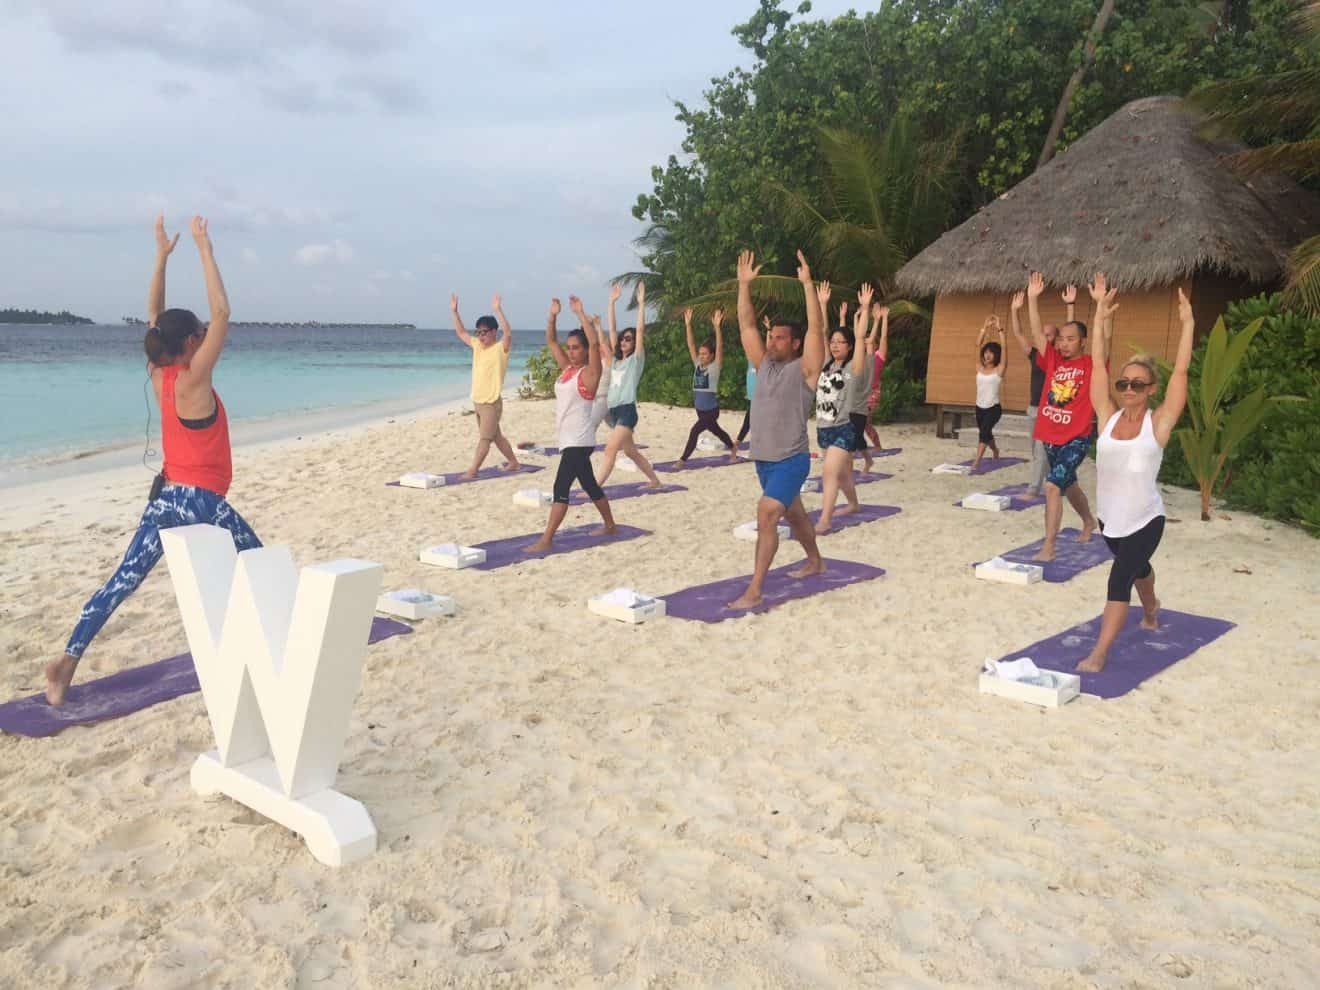 Yoga with Tara as we enjoy the morning sun and breeze. A much needed Maldives yoga retreat and vacation for us yogis